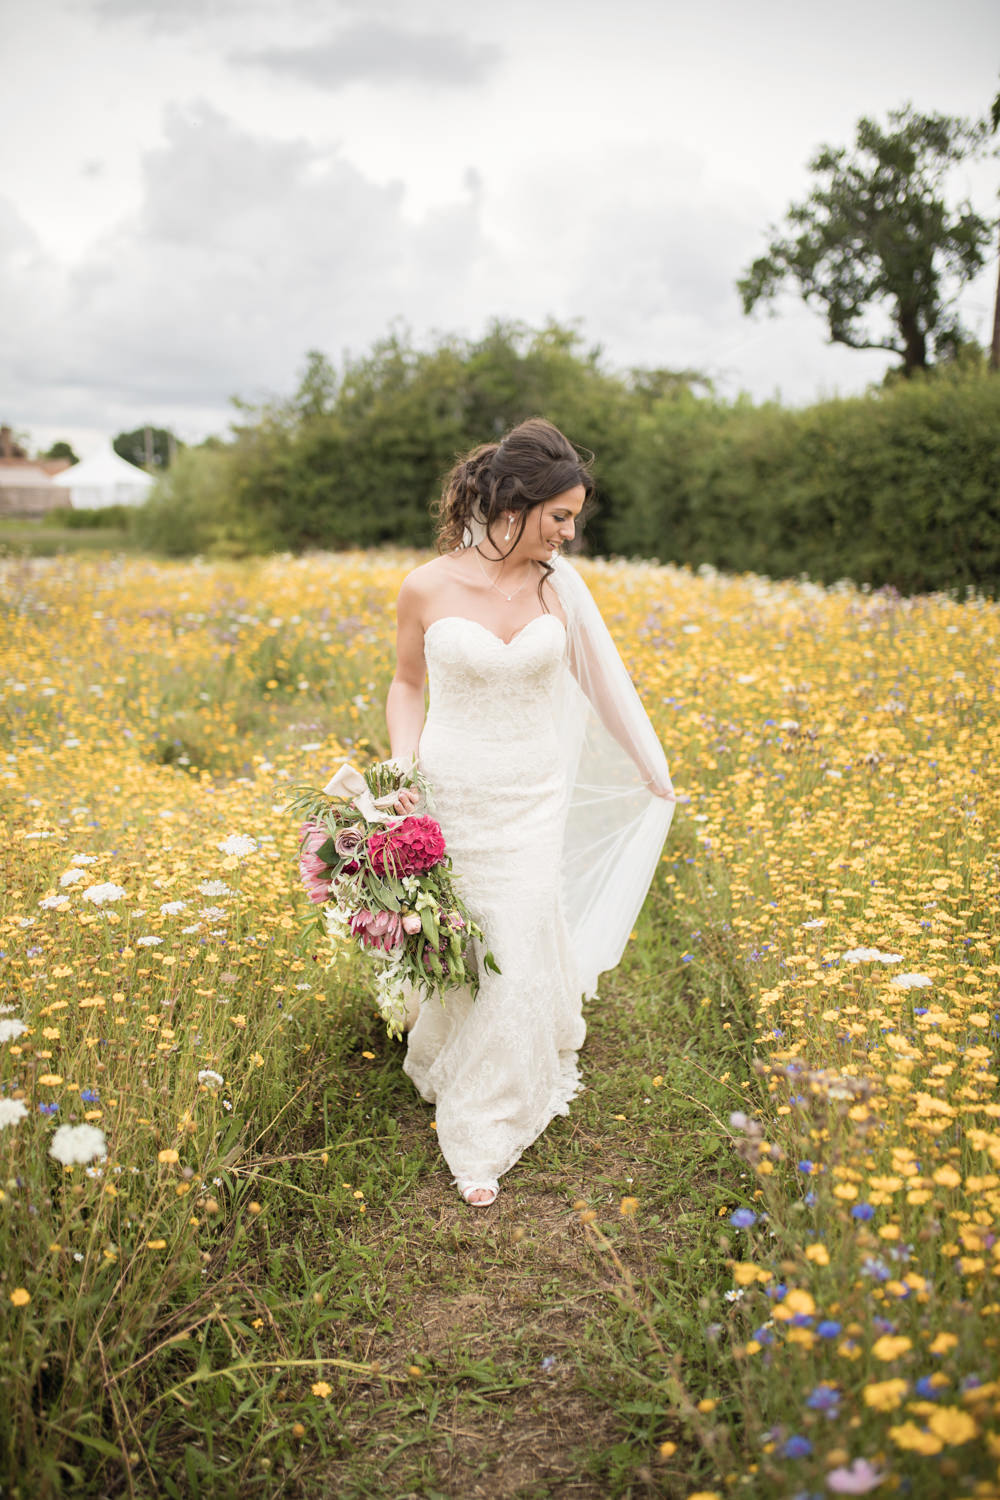 Bride Bridal Lace Dress Gown Strapless Sweetheart Train Veil House Meadow Wedding Kerry Ann Duffy Photography